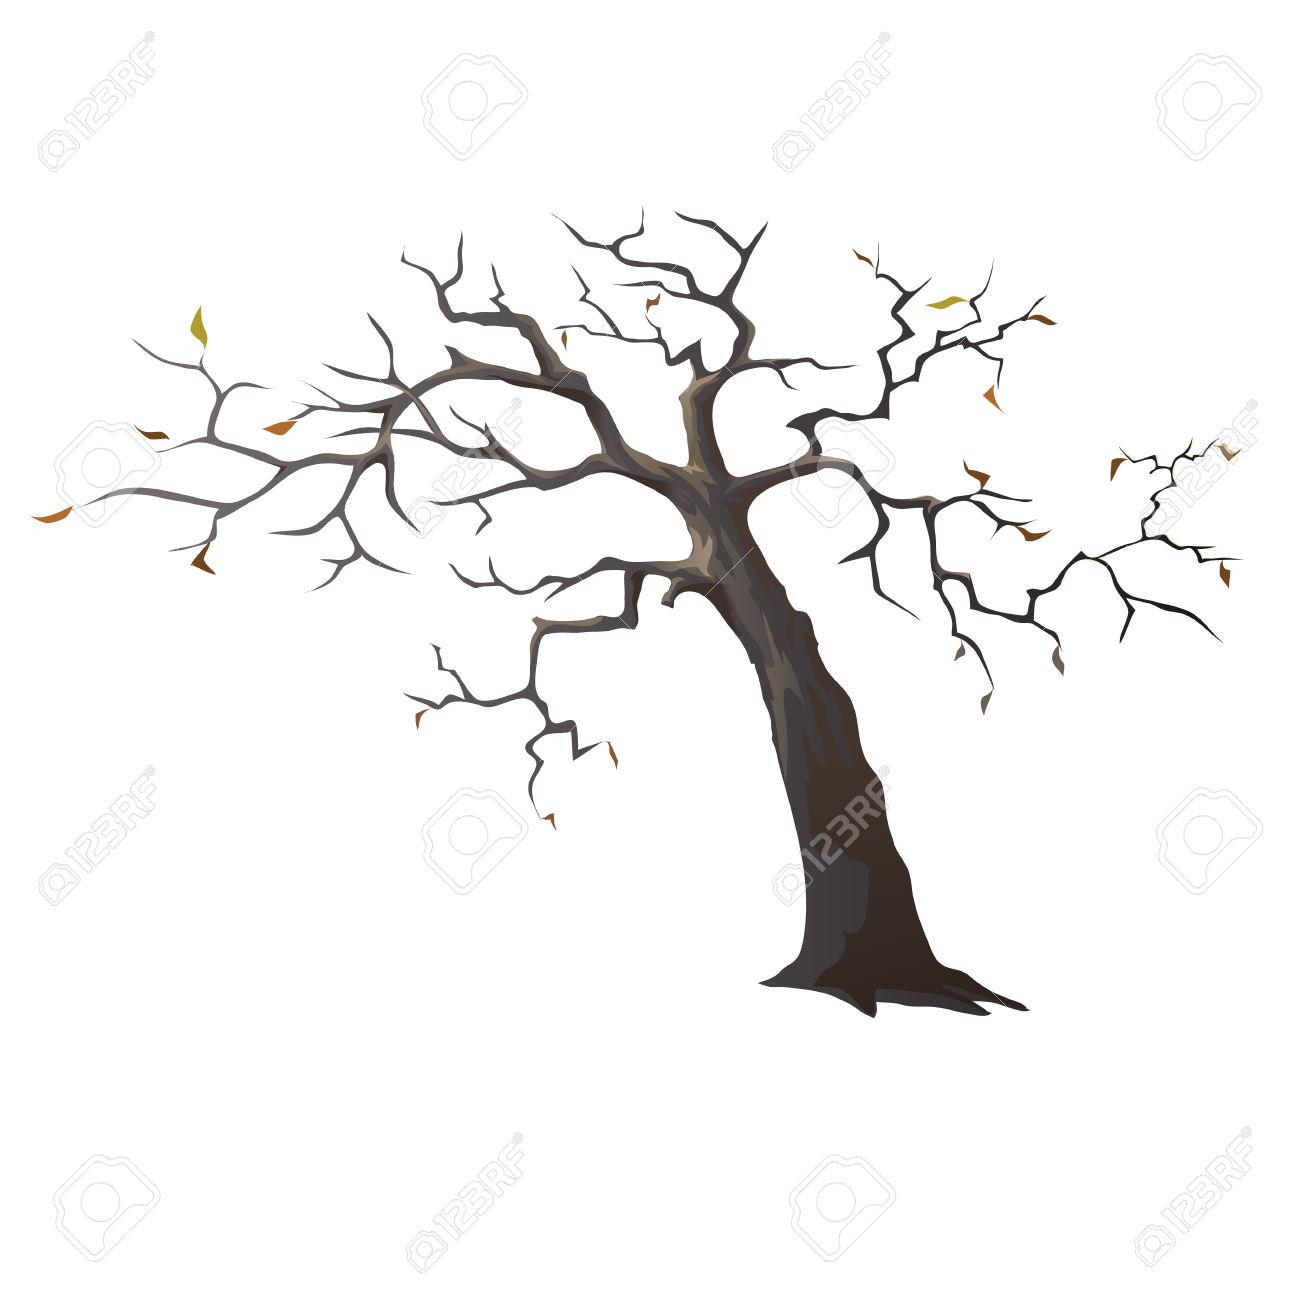 Lonely Dead Tree With Sparse Leaves, Vector Illustration Royalty.